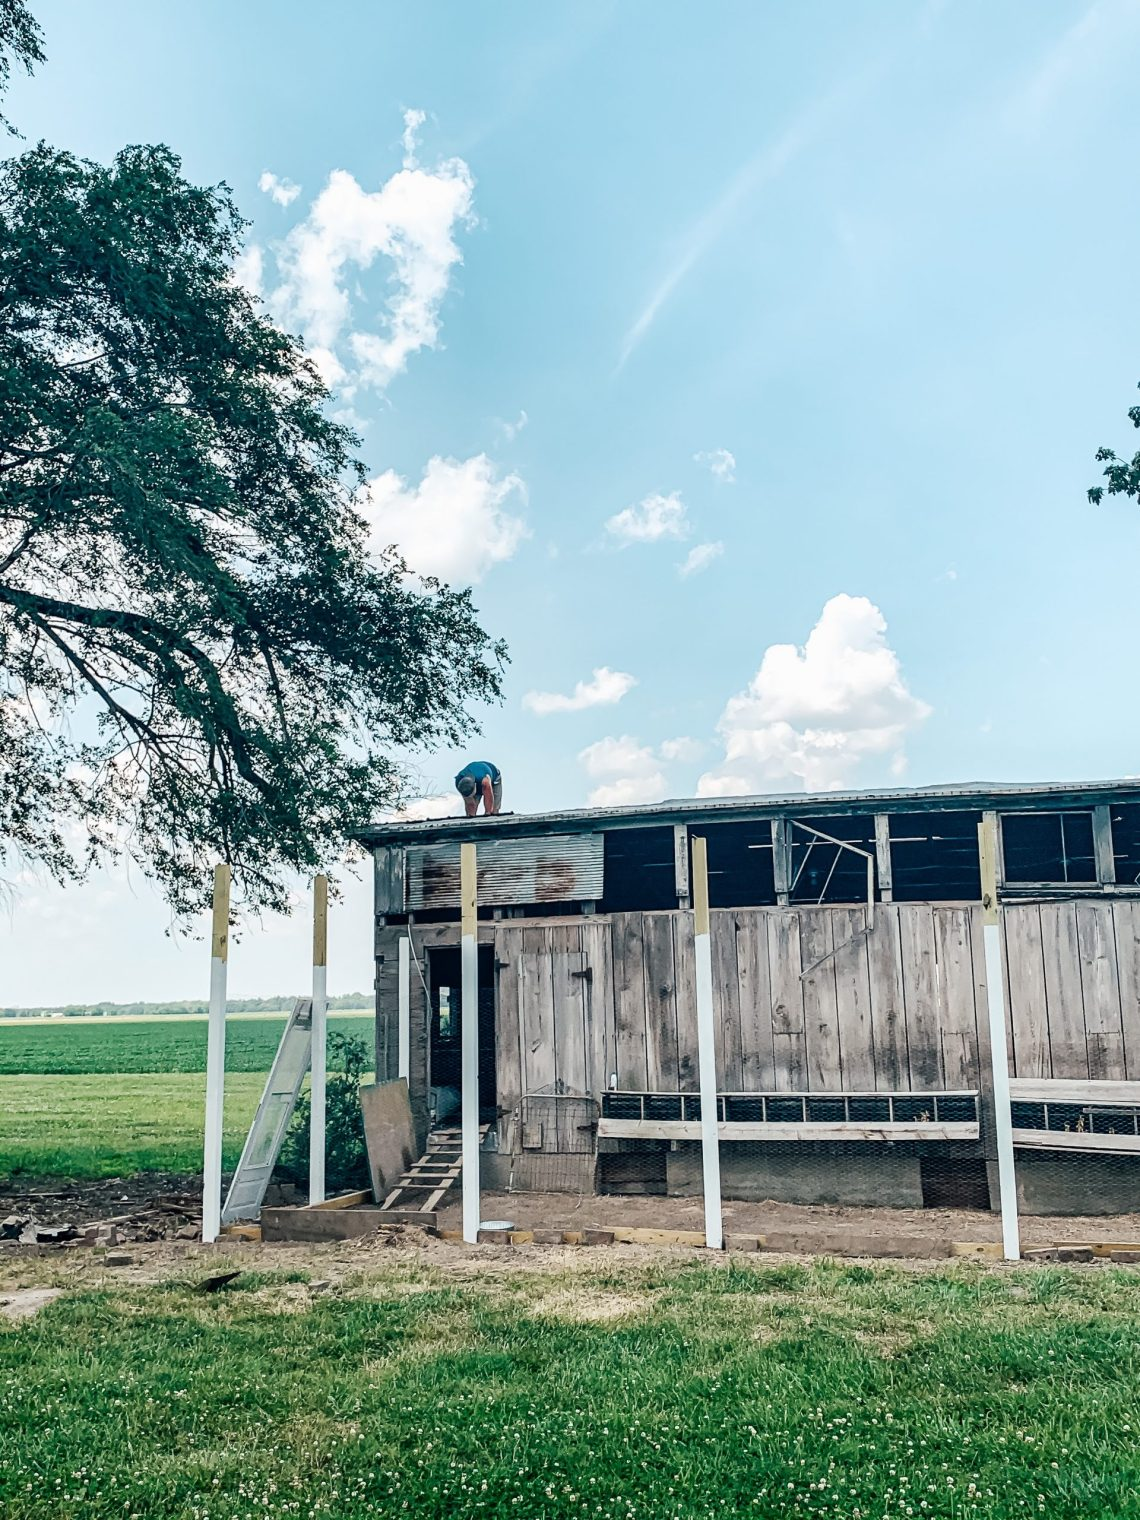 This Week at the Farm: Sweet Summertime